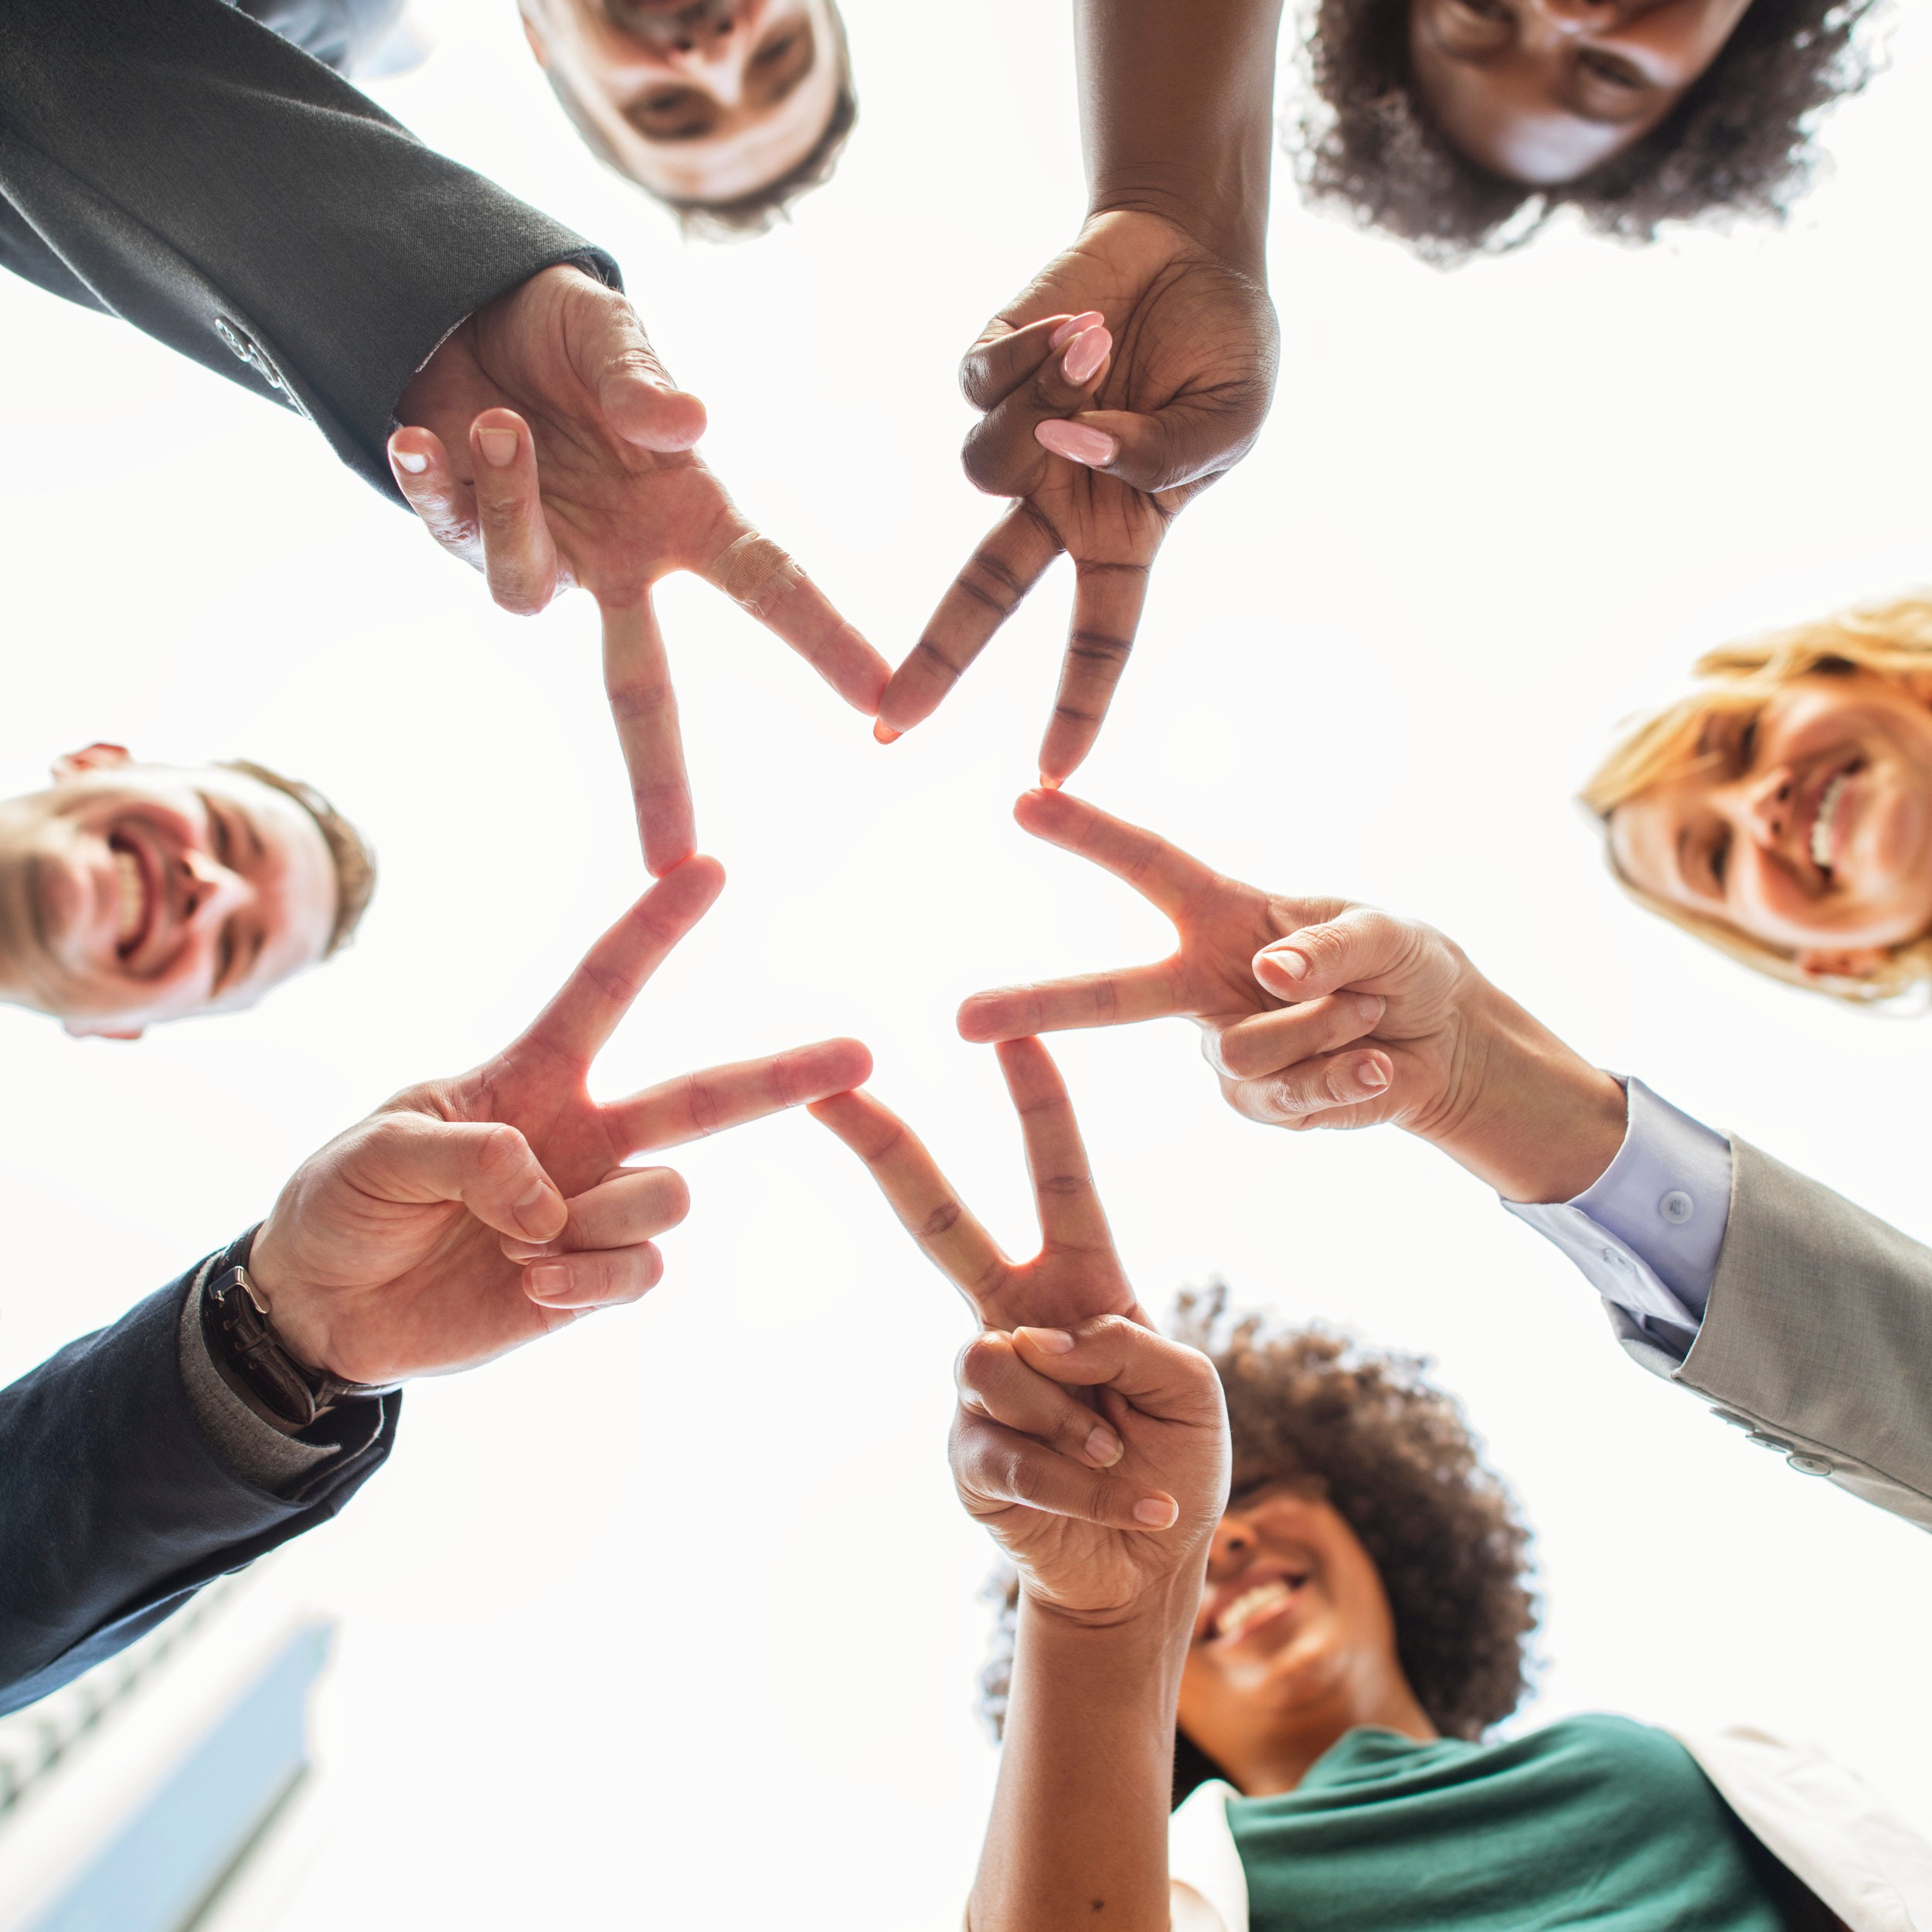 A diverse group of five people in professional attire are pictured from below as they hold out their fingers in V shapes and touch them together to form a star.